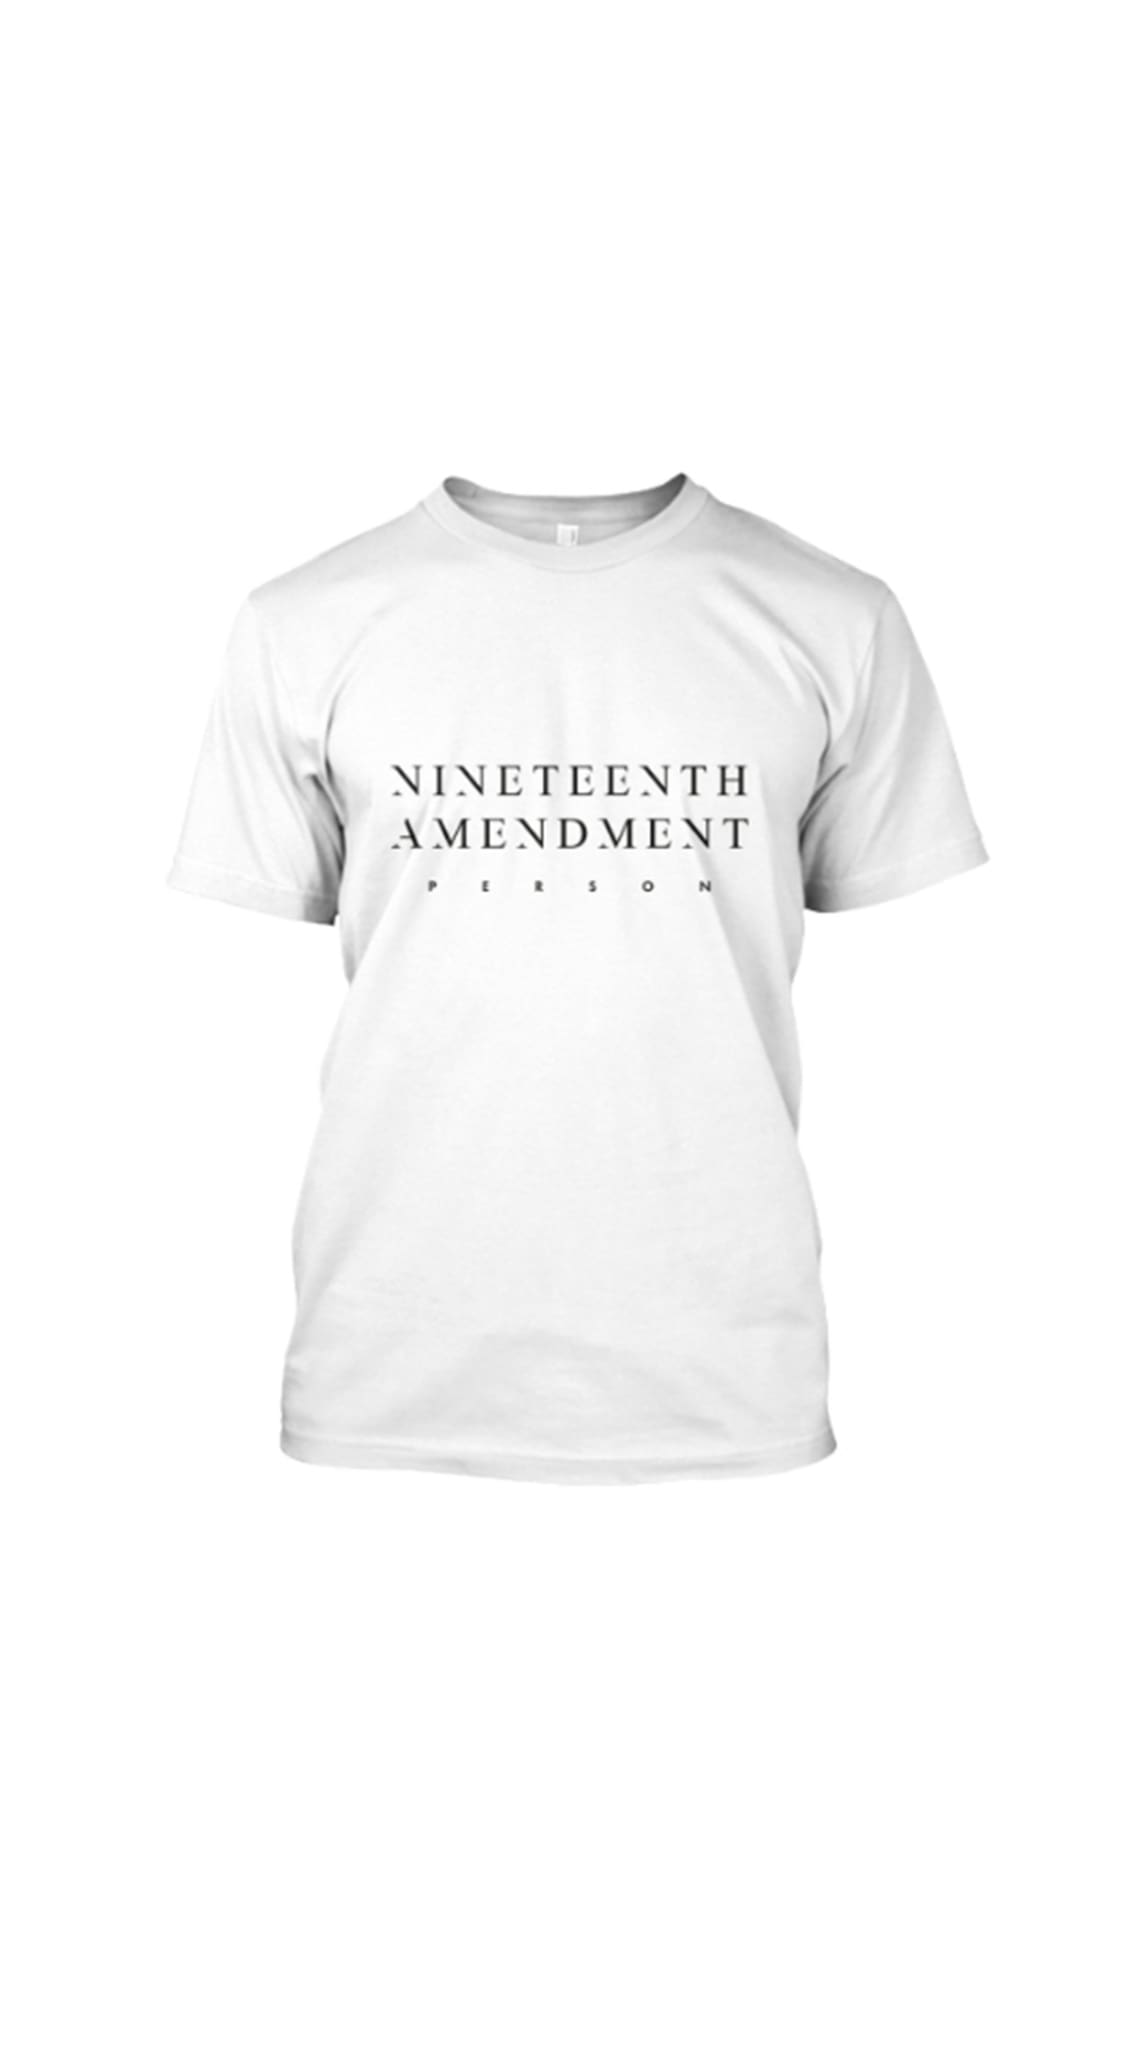 19th Amendment T-Shirt by Amanda Curtis Designs White T-Shirt front with Nineteenth Amendment logo